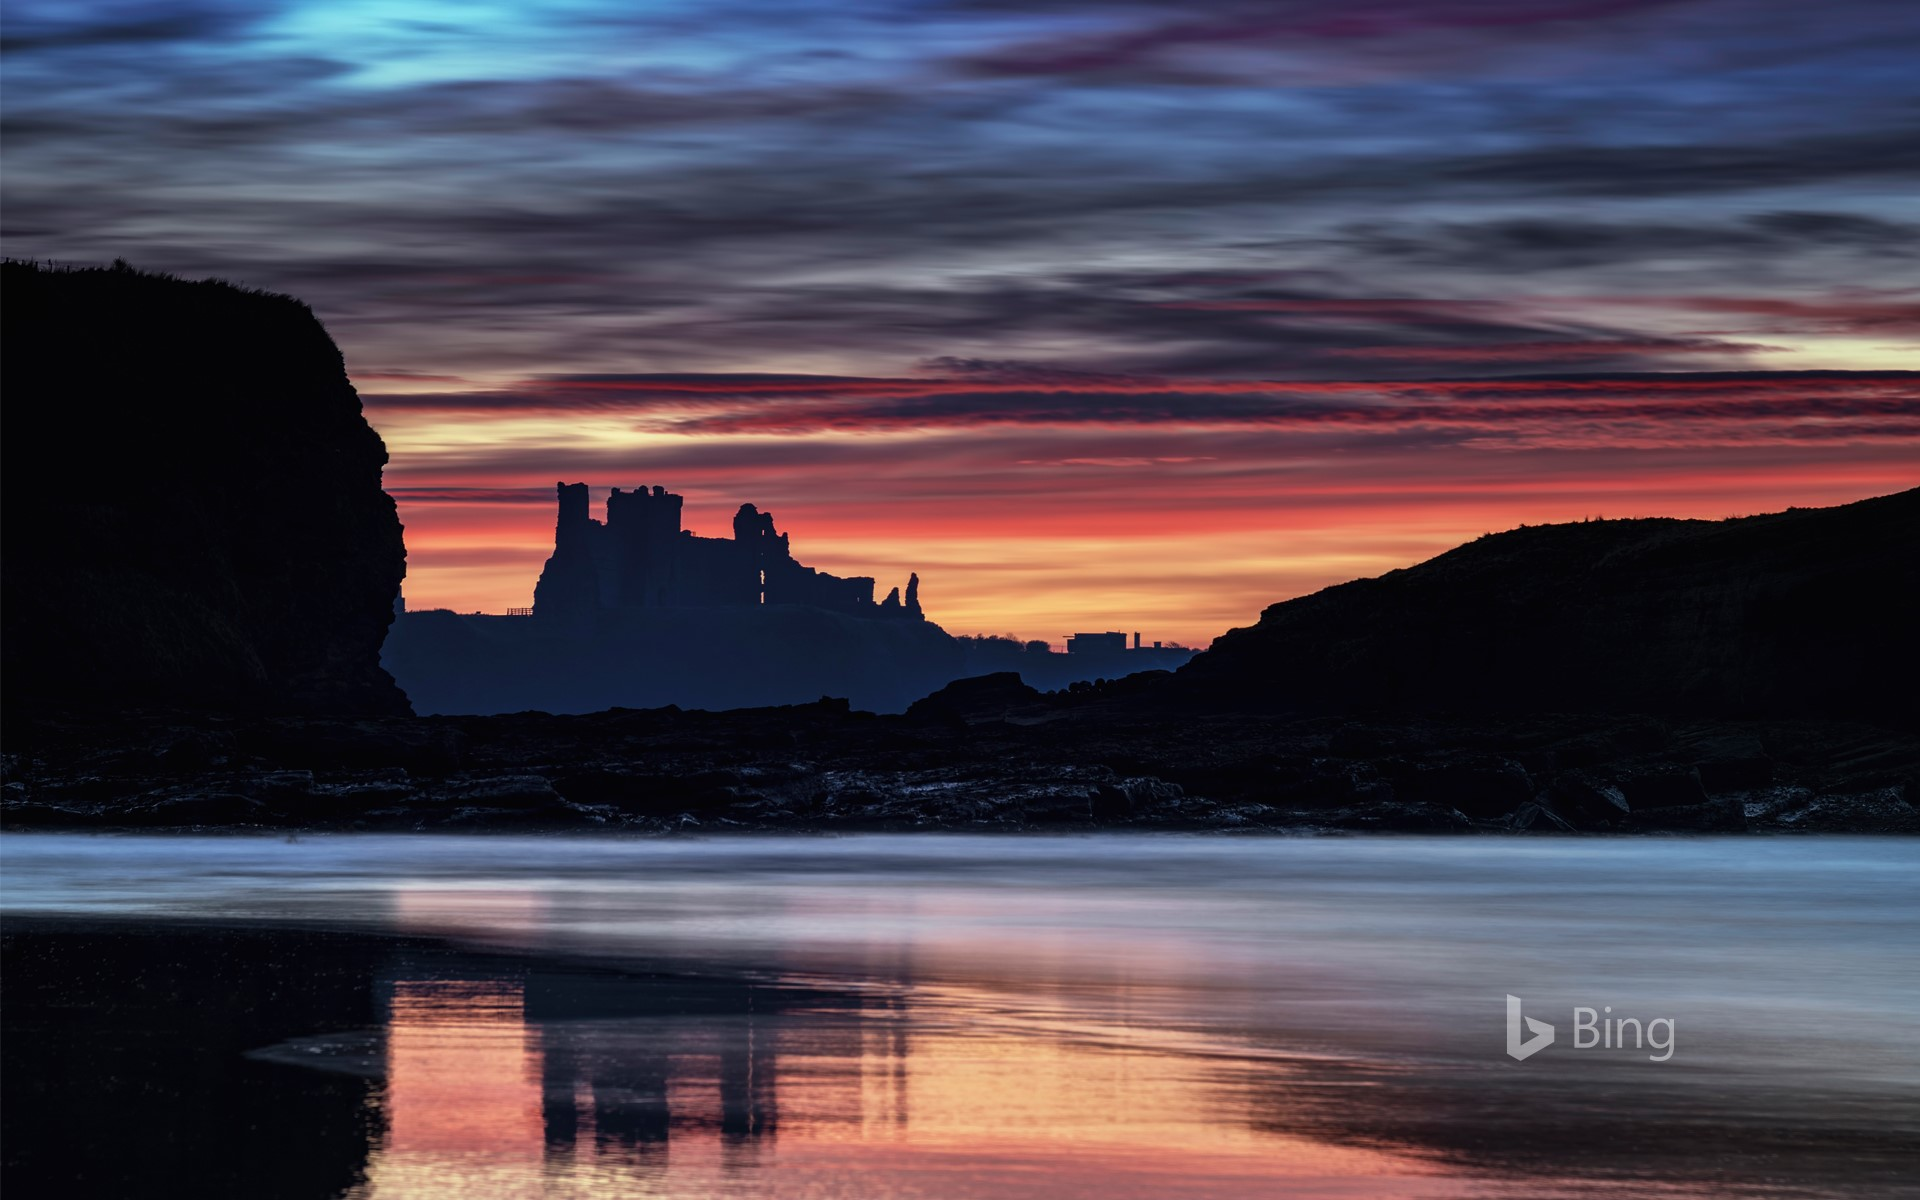 Tantallon Castle at sunset from Seacliff Beach, East Lothian, Scotland